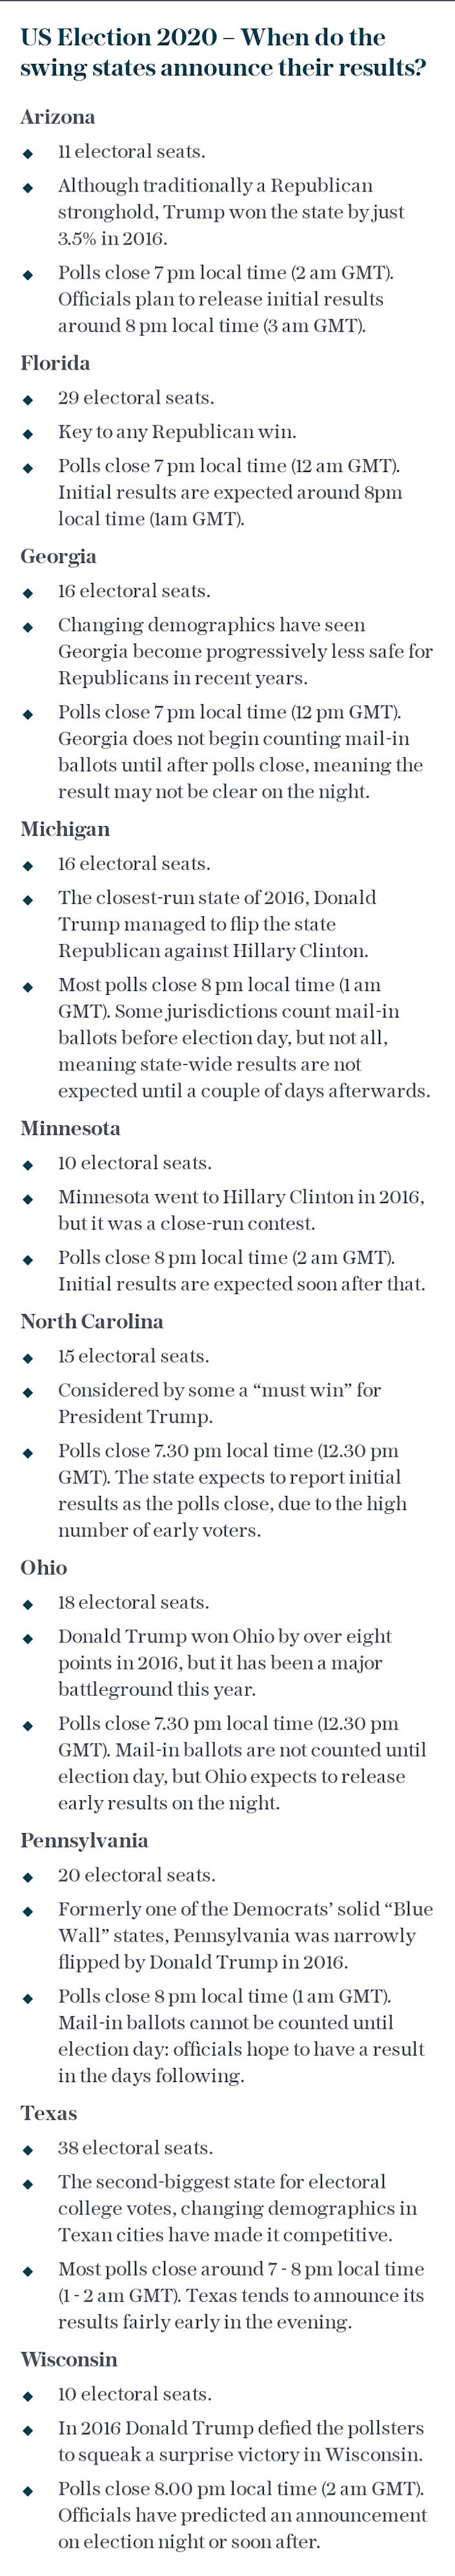 US Election 2020 – When do the swing states announce their results?